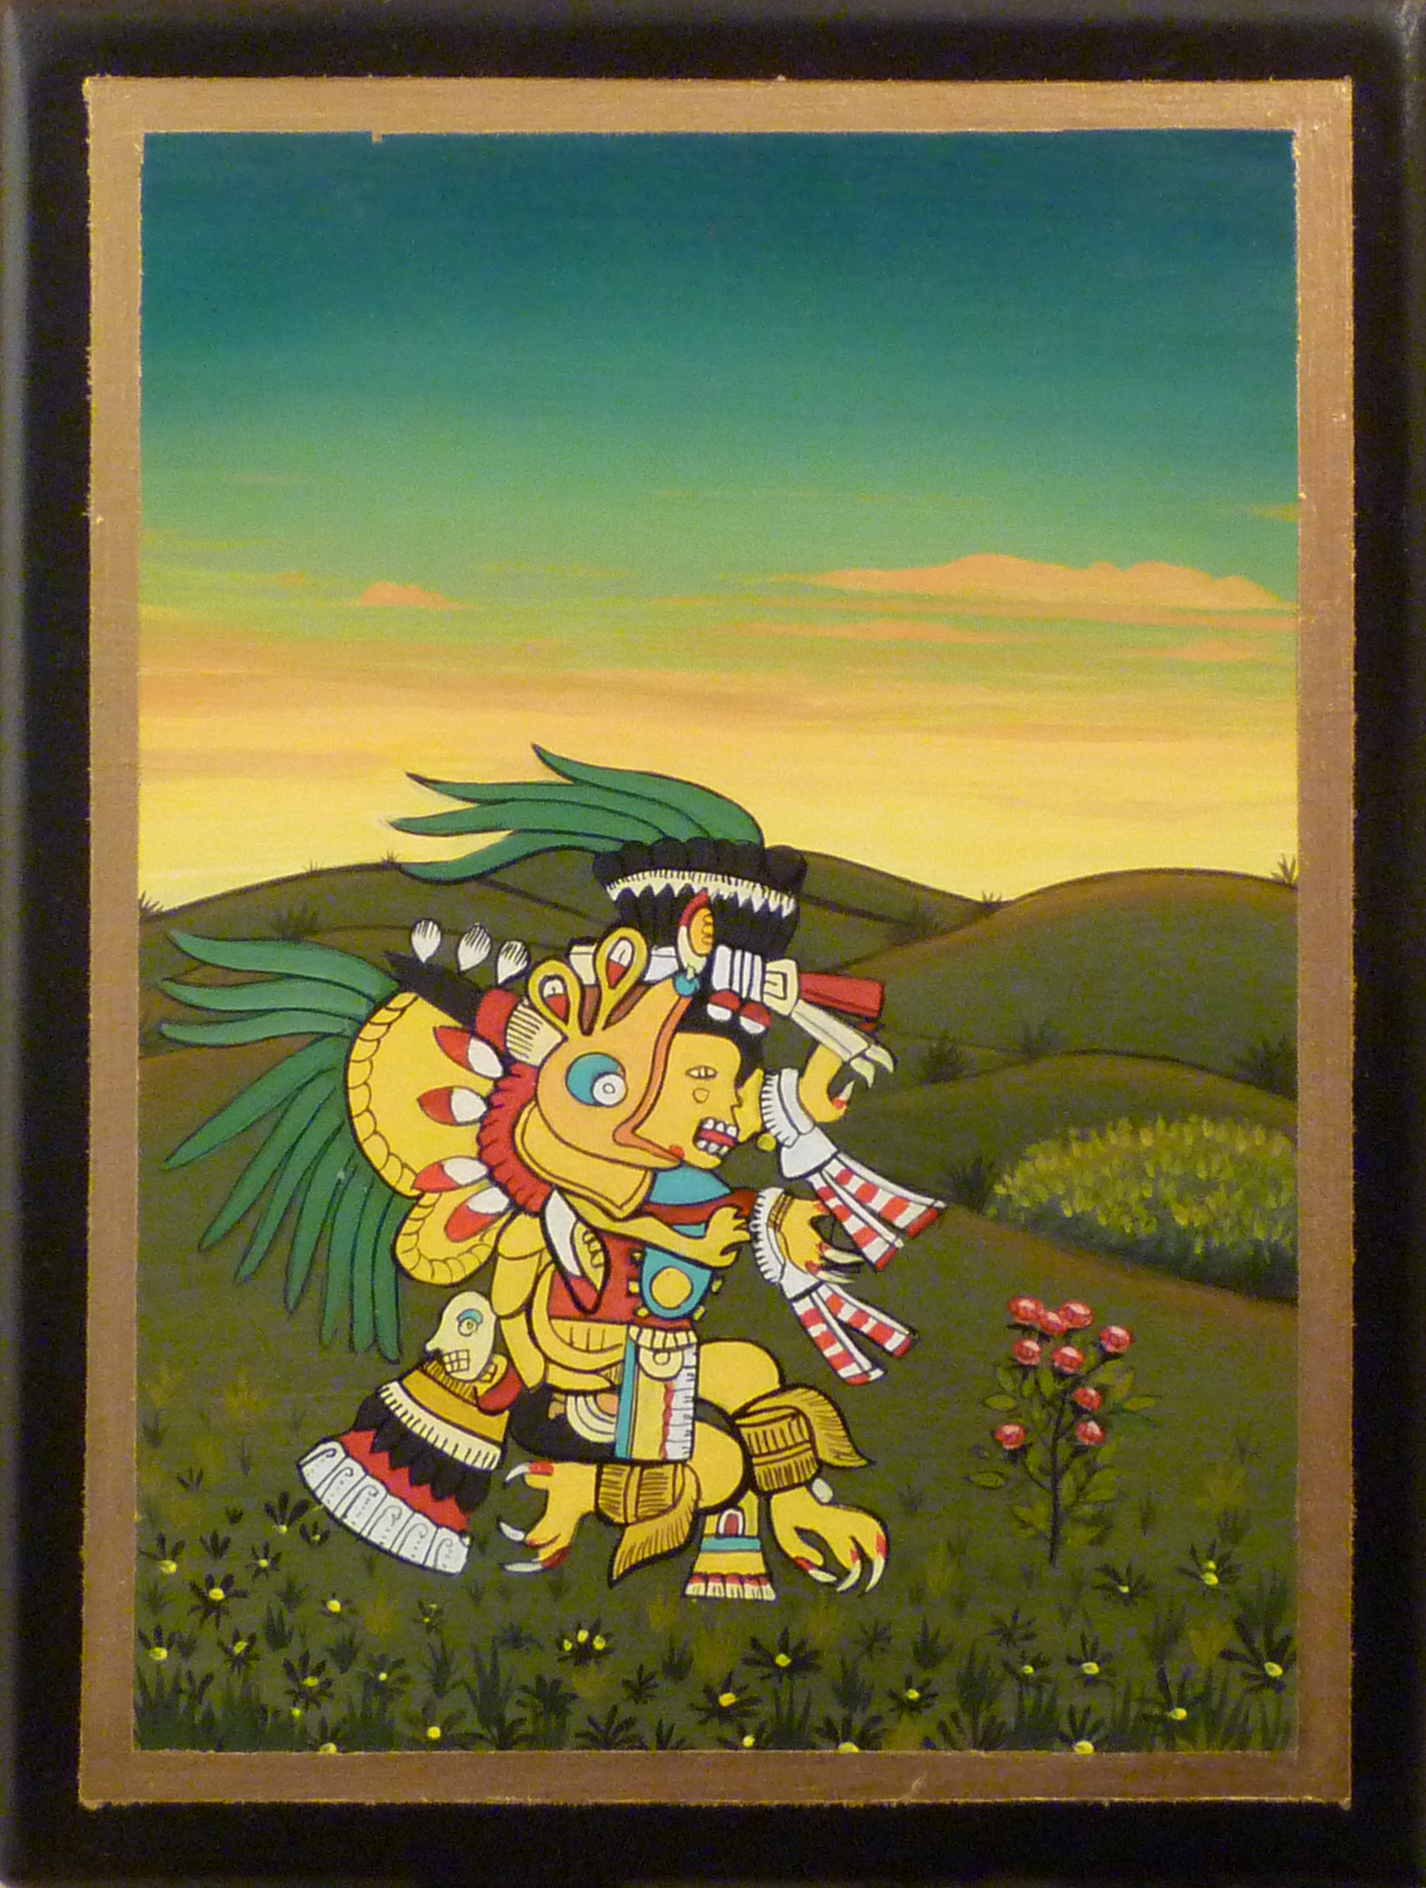 Gathering Ingredients at Dusk 2011 acrylic and metal leaf on panel 8 x 6 inche s   available at the 13FOREST Gallery